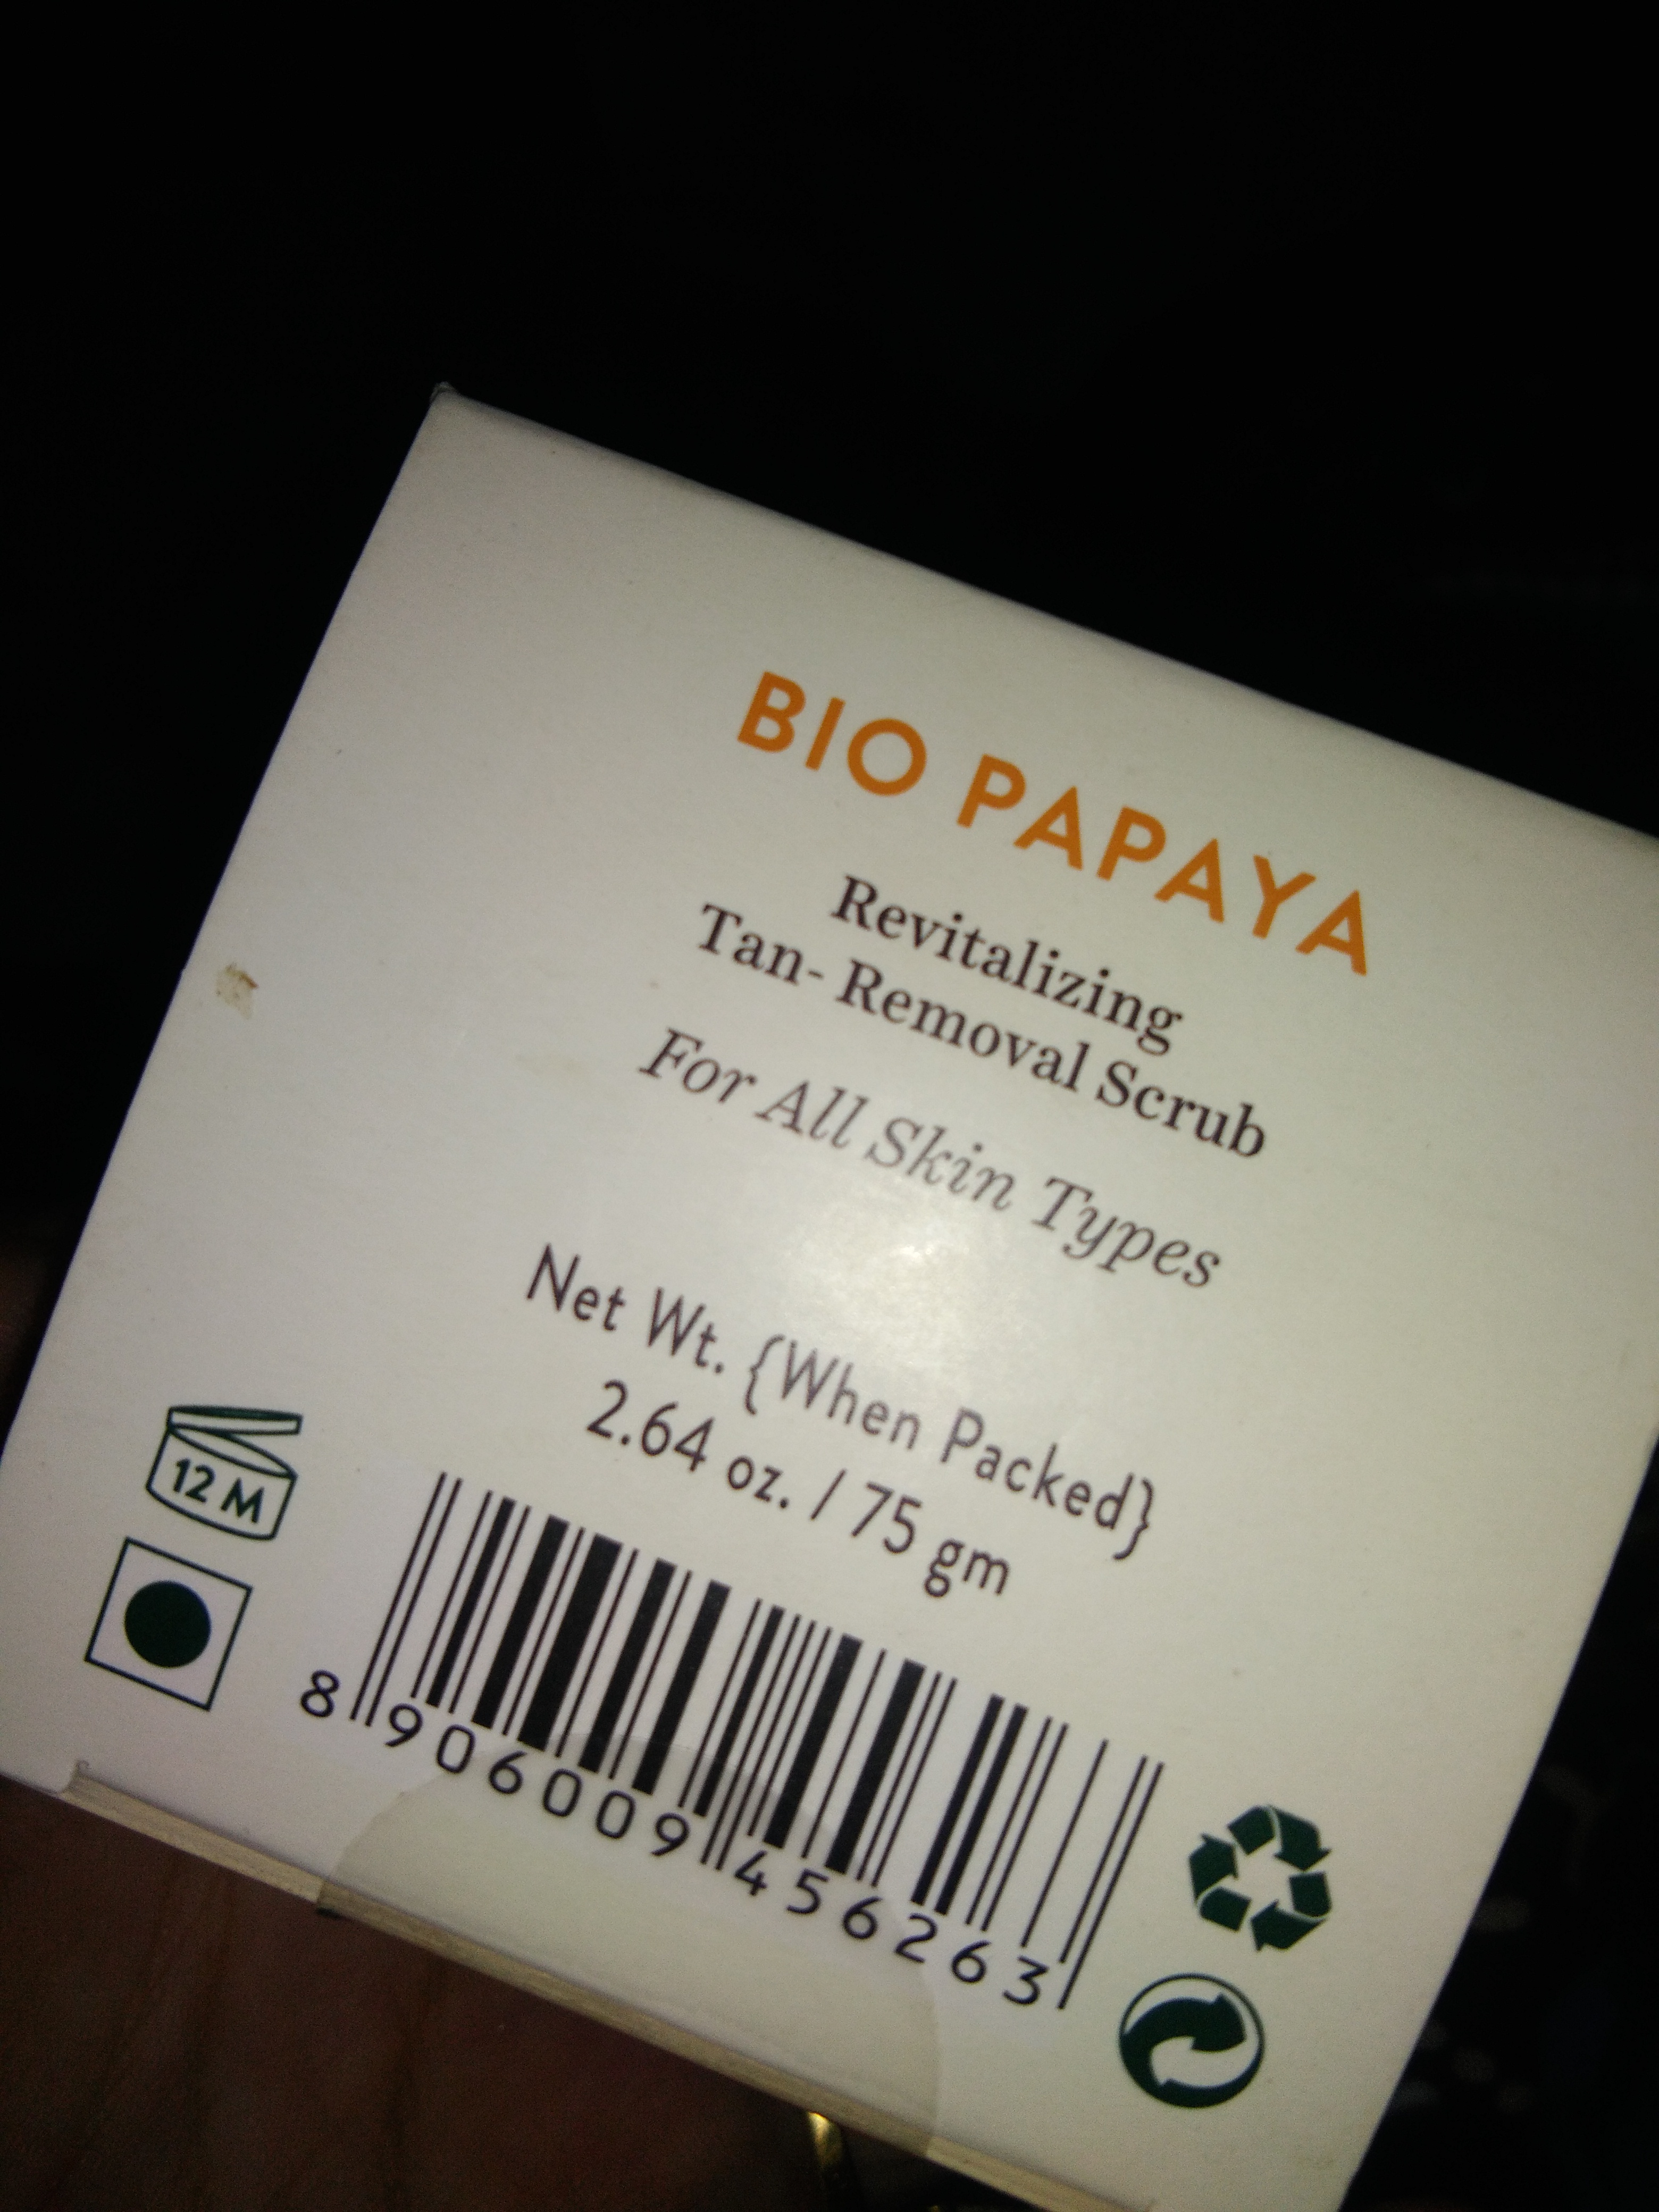 Biotique Bio Papaya Revitalizing Tan Removal Scrub pic 3-Good buy for normal to oily skin-By komal24